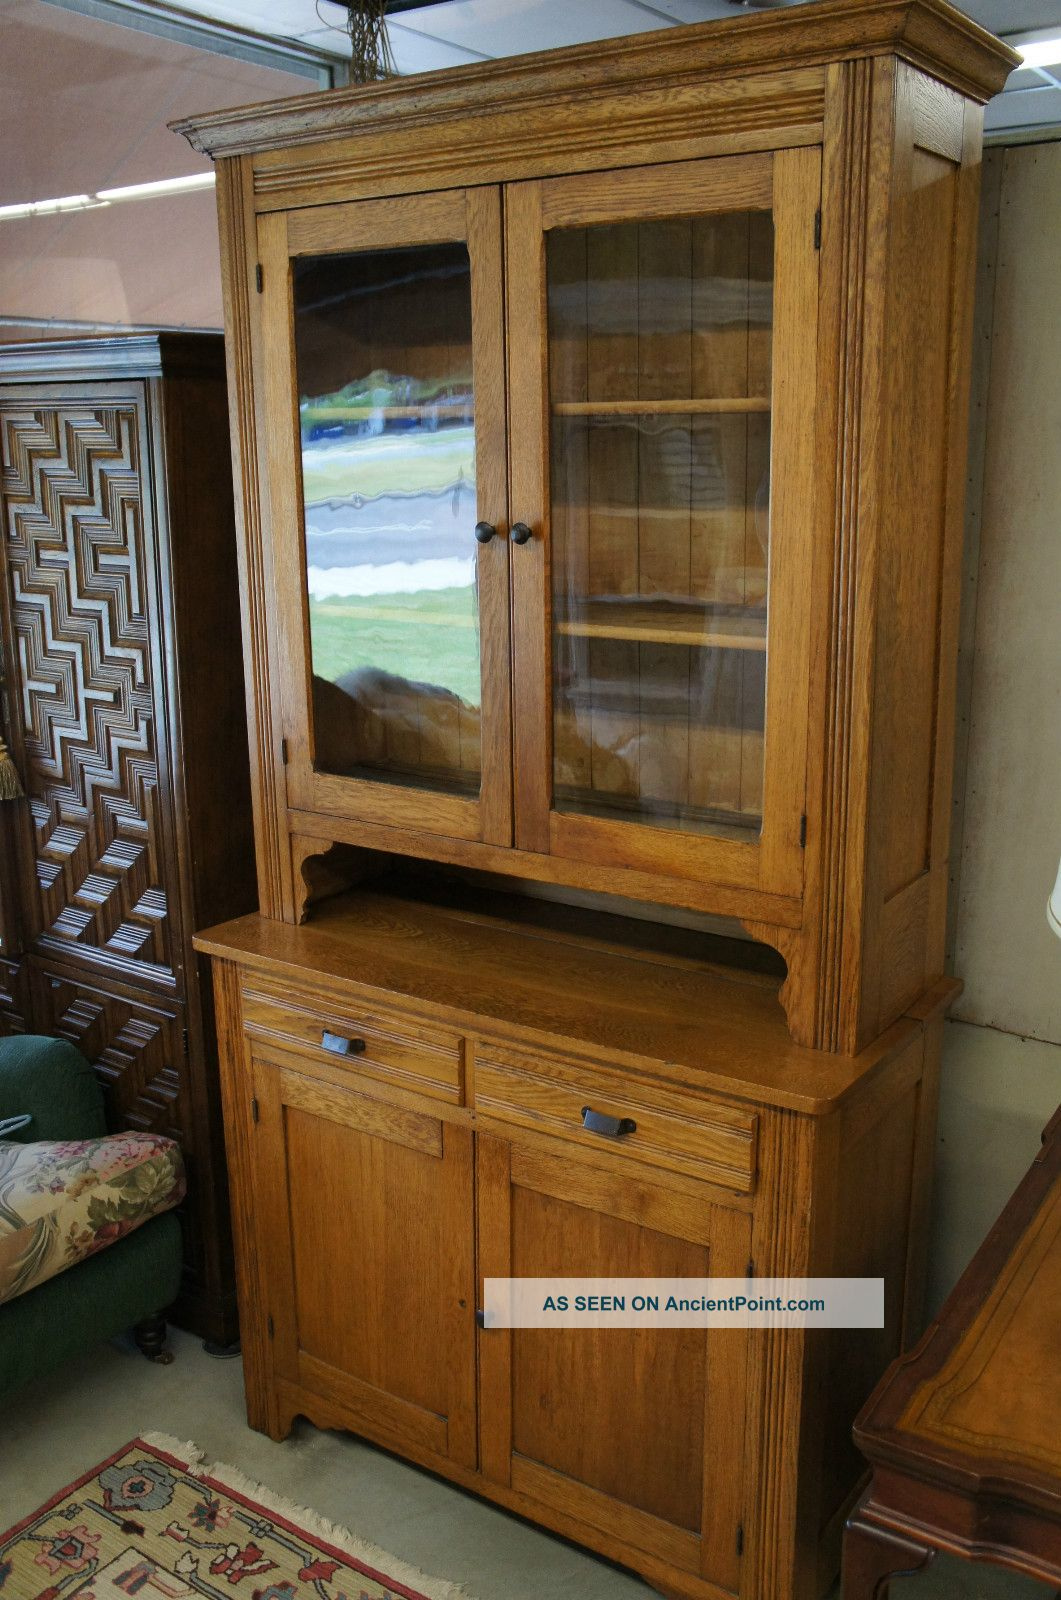 - Unique Antique Oak China Cabinet Curio Glass Rare Vintage Display Ships